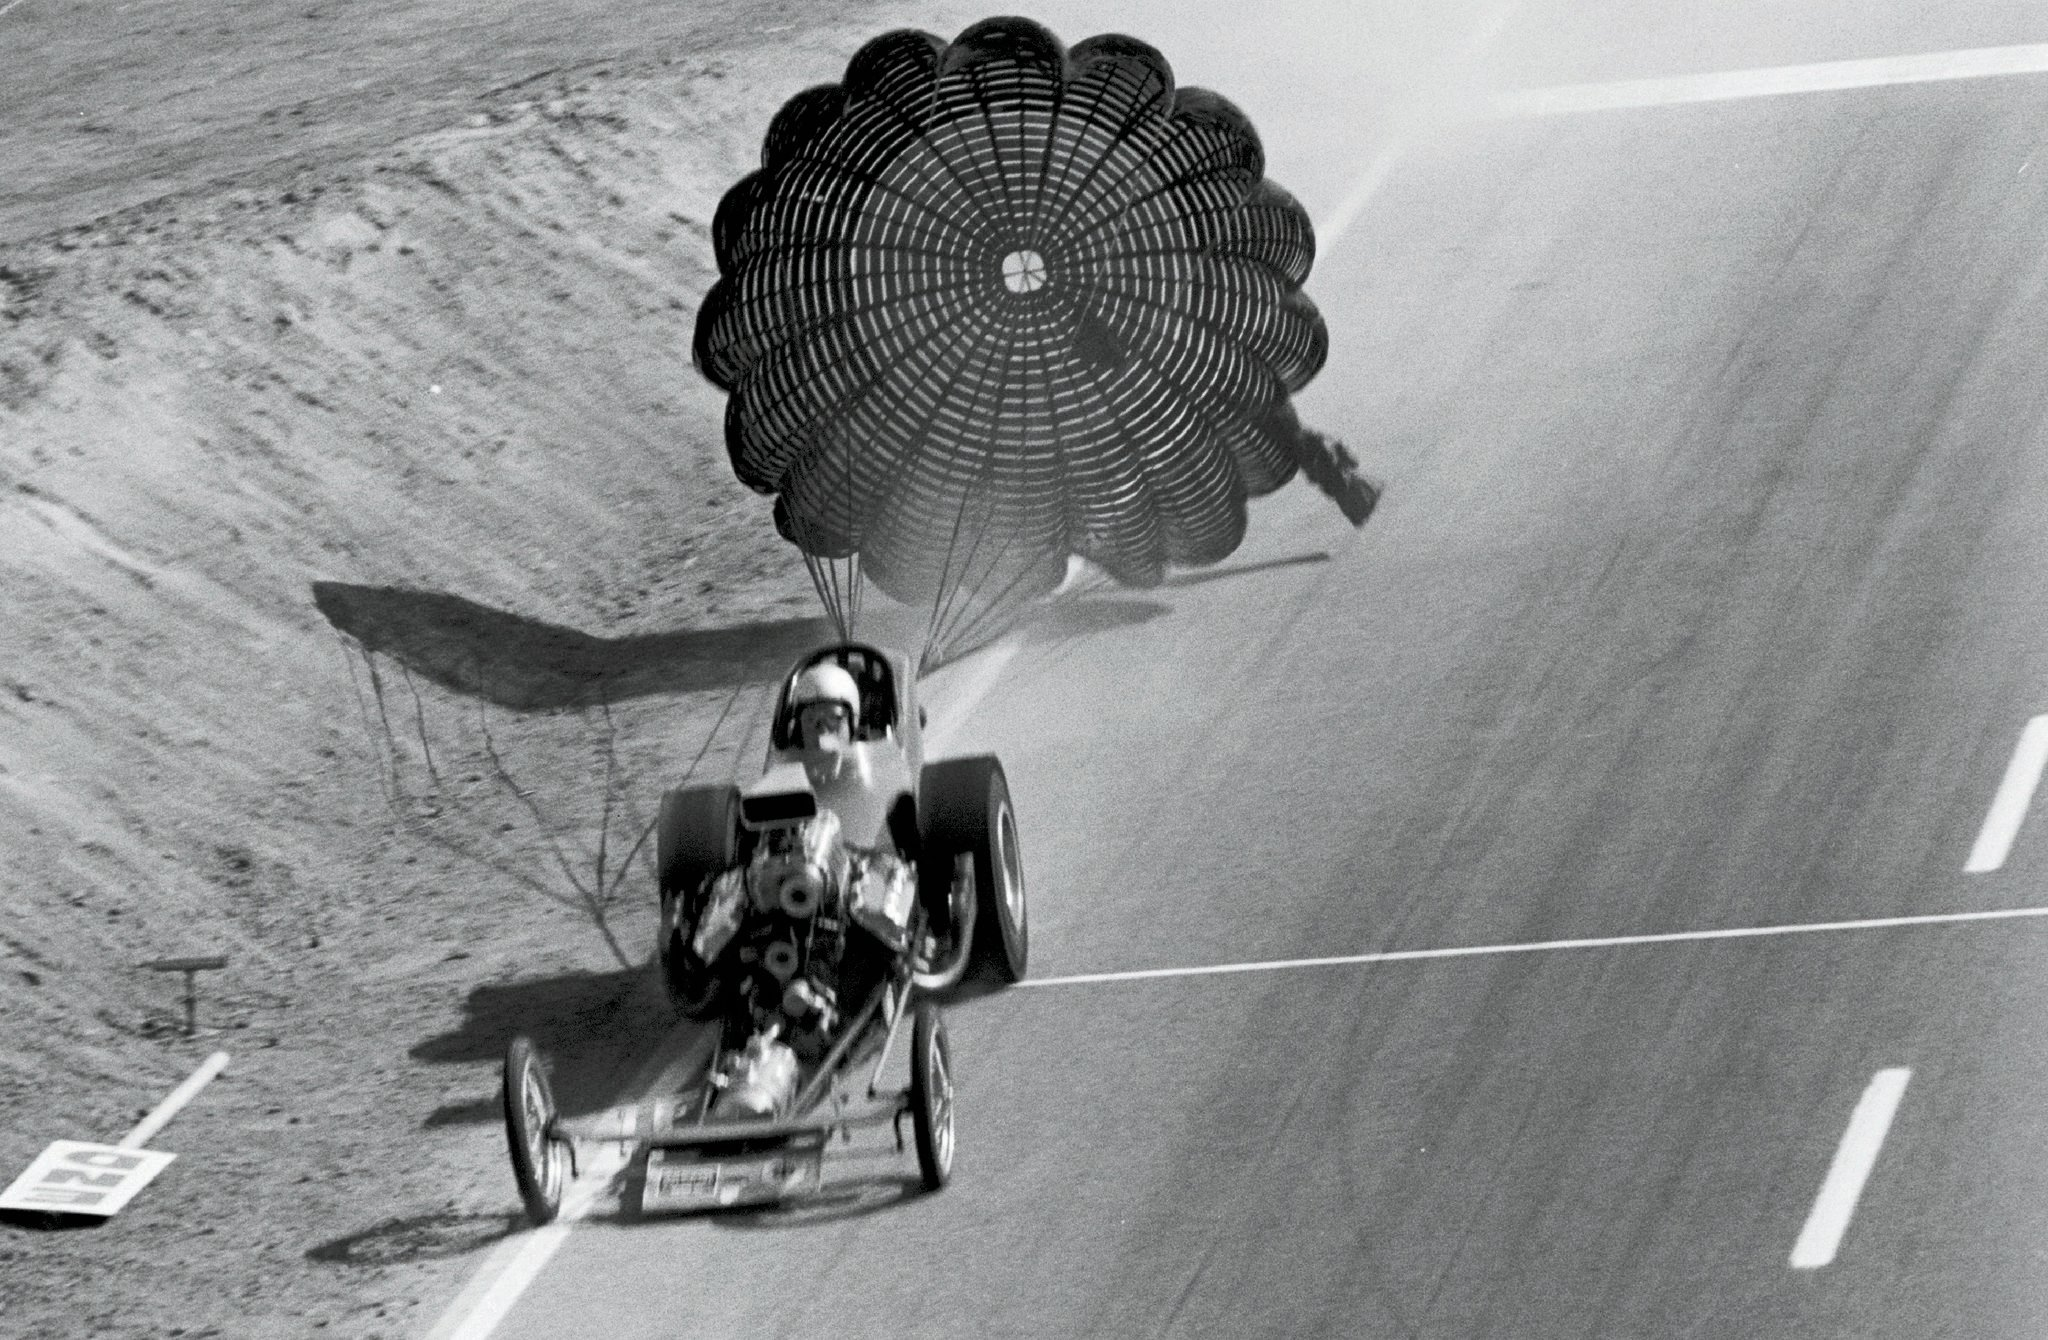 """Winternationals Top Fuel Eliminator Jack Williams narrowly survived this off-road excursion during qualifying for Riverside Raceway's Hot Rod Magazine Championships, then won the inaugural event. (Note the already-downed """"END"""" sign next to the finish-line photocell.) Three months later, the red-hot Crosley, Williams & Swan fueler runnerupped at Indy's Nationals to clinch NHRA's first-ever Top Fuel points title."""